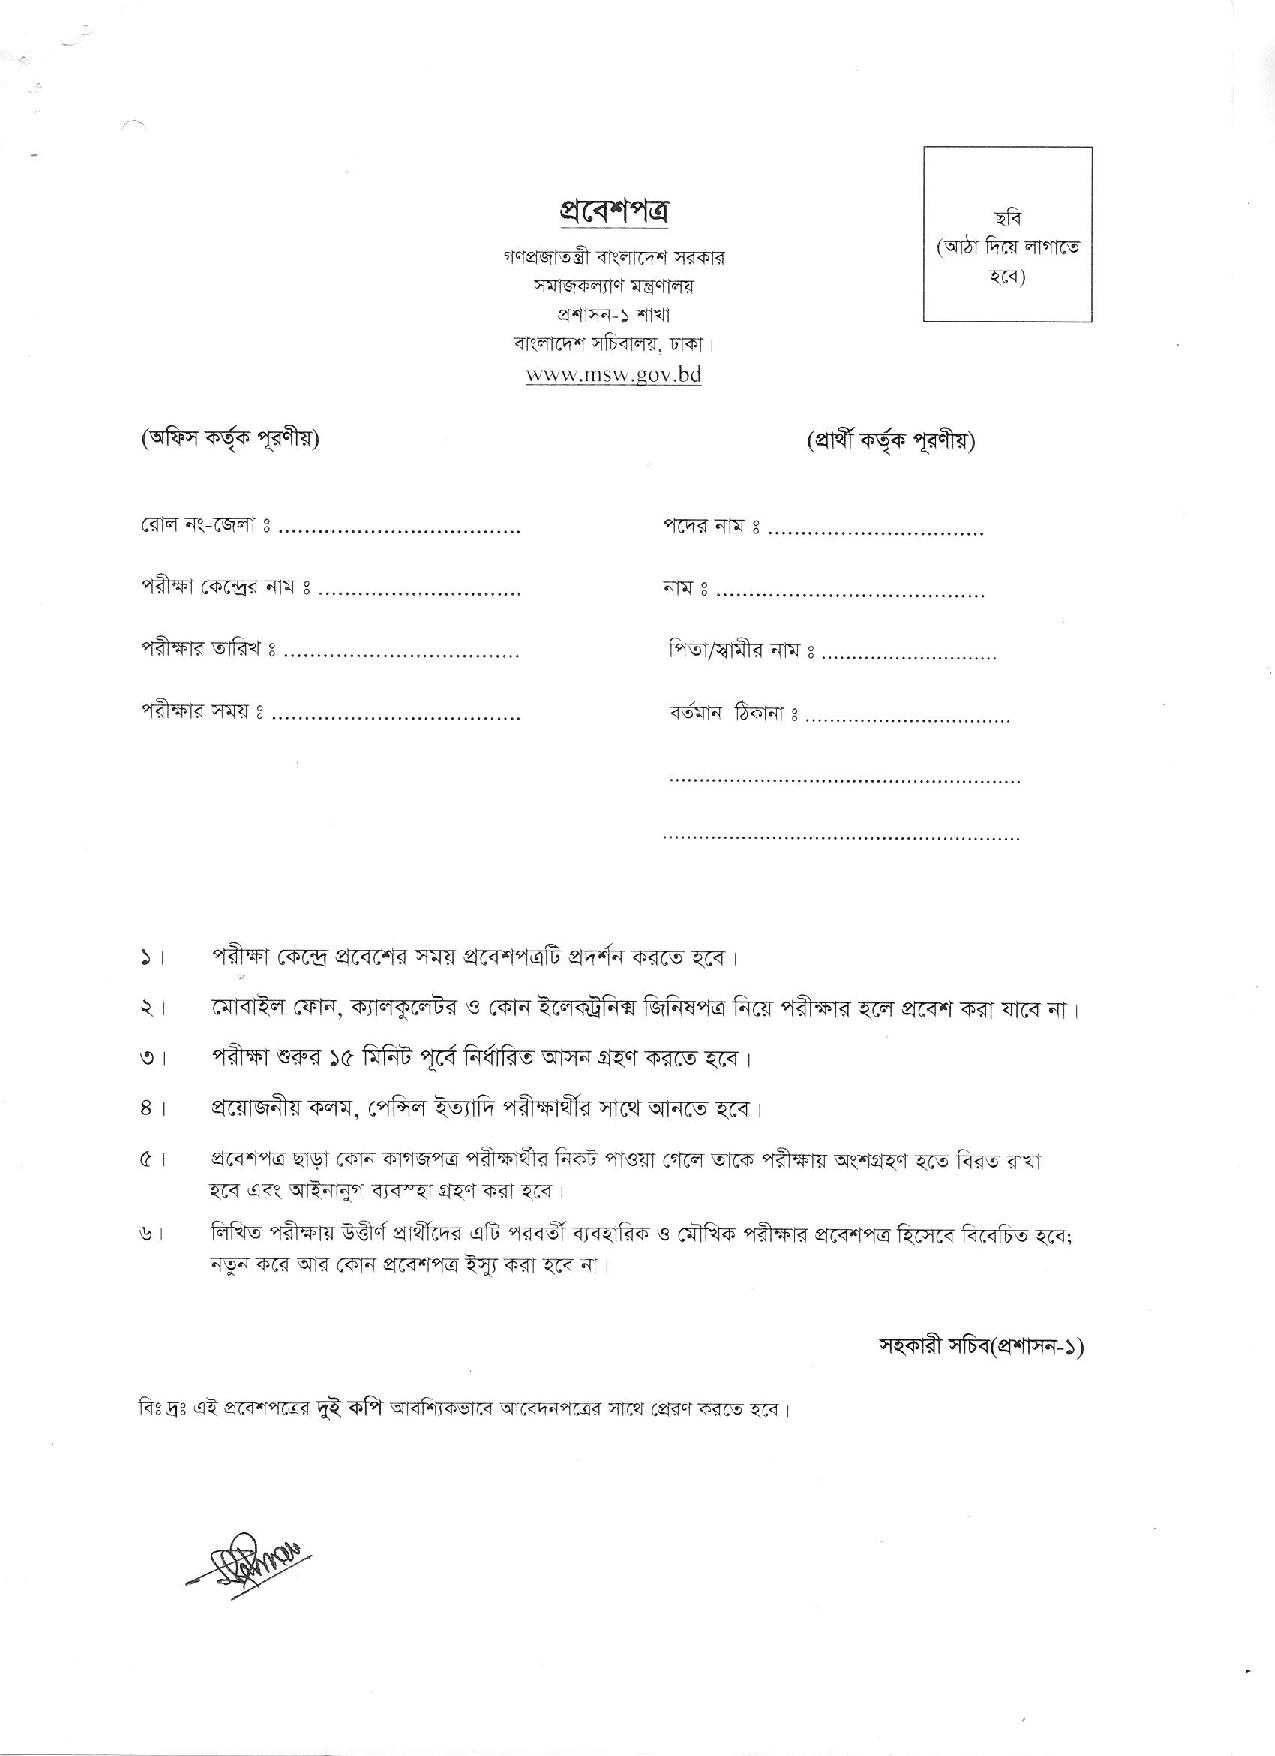 www.msw.gov.bd admit card